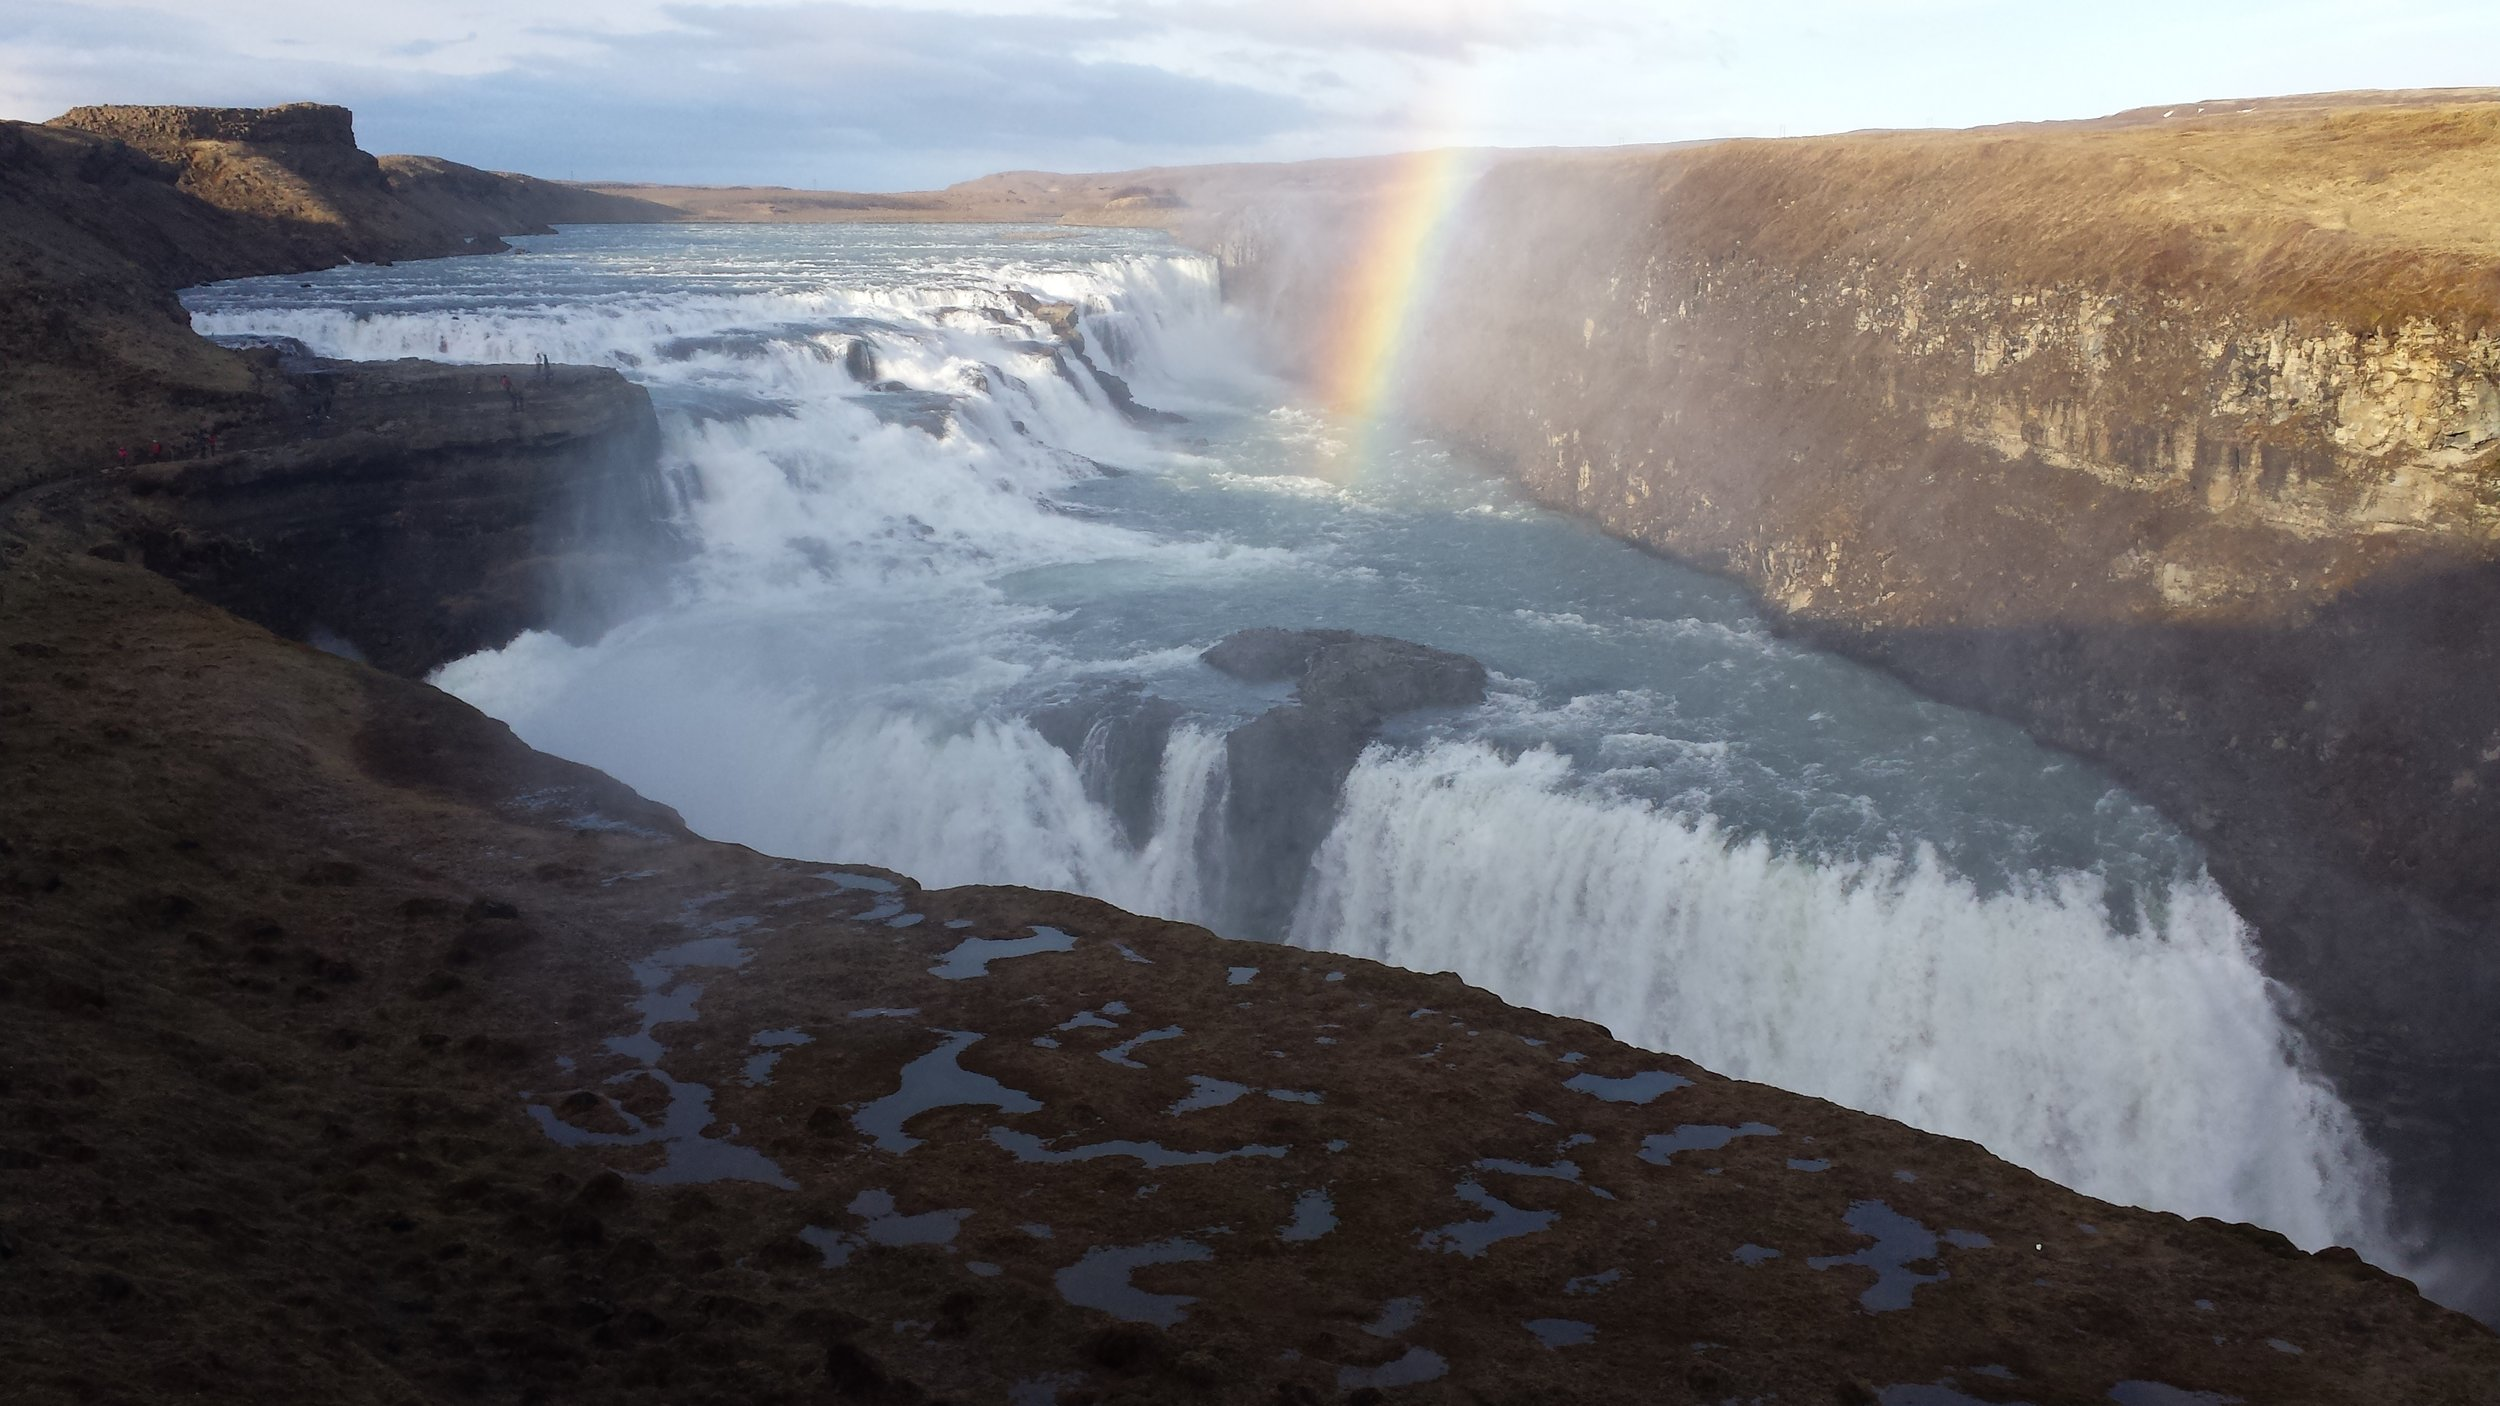 The massive waterfall, Gullfoss, also part of the Golden Circle.